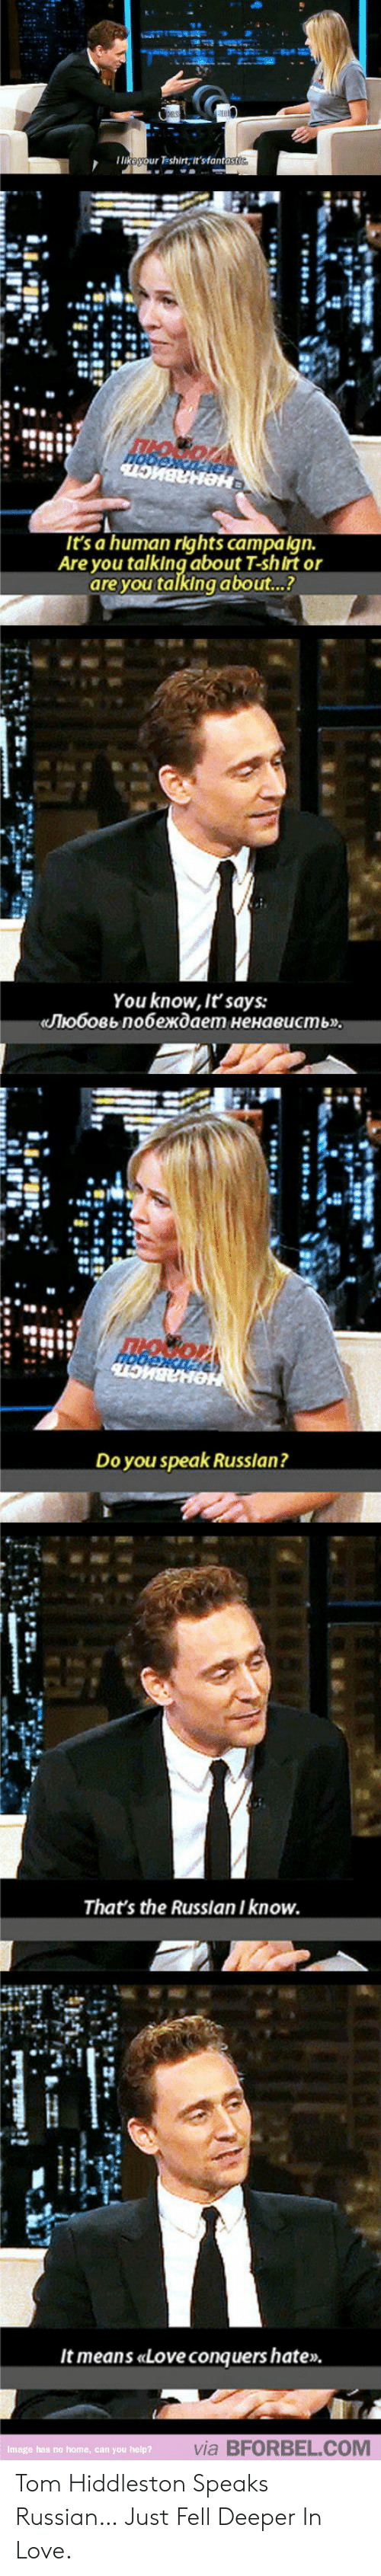 Love, Russian, and Human: t's a human rights campaign.  Are you talking about T-shirt or  are you talking about..?  You know, It'says:  «Nюбовь побеждает ненависть  Do you speak Russlan?  That's the Russlan I know.  3  It means «Love conquershate»  via BFORBEL.COM  hss no  you Tom Hiddleston Speaks Russian… Just Fell Deeper In Love.